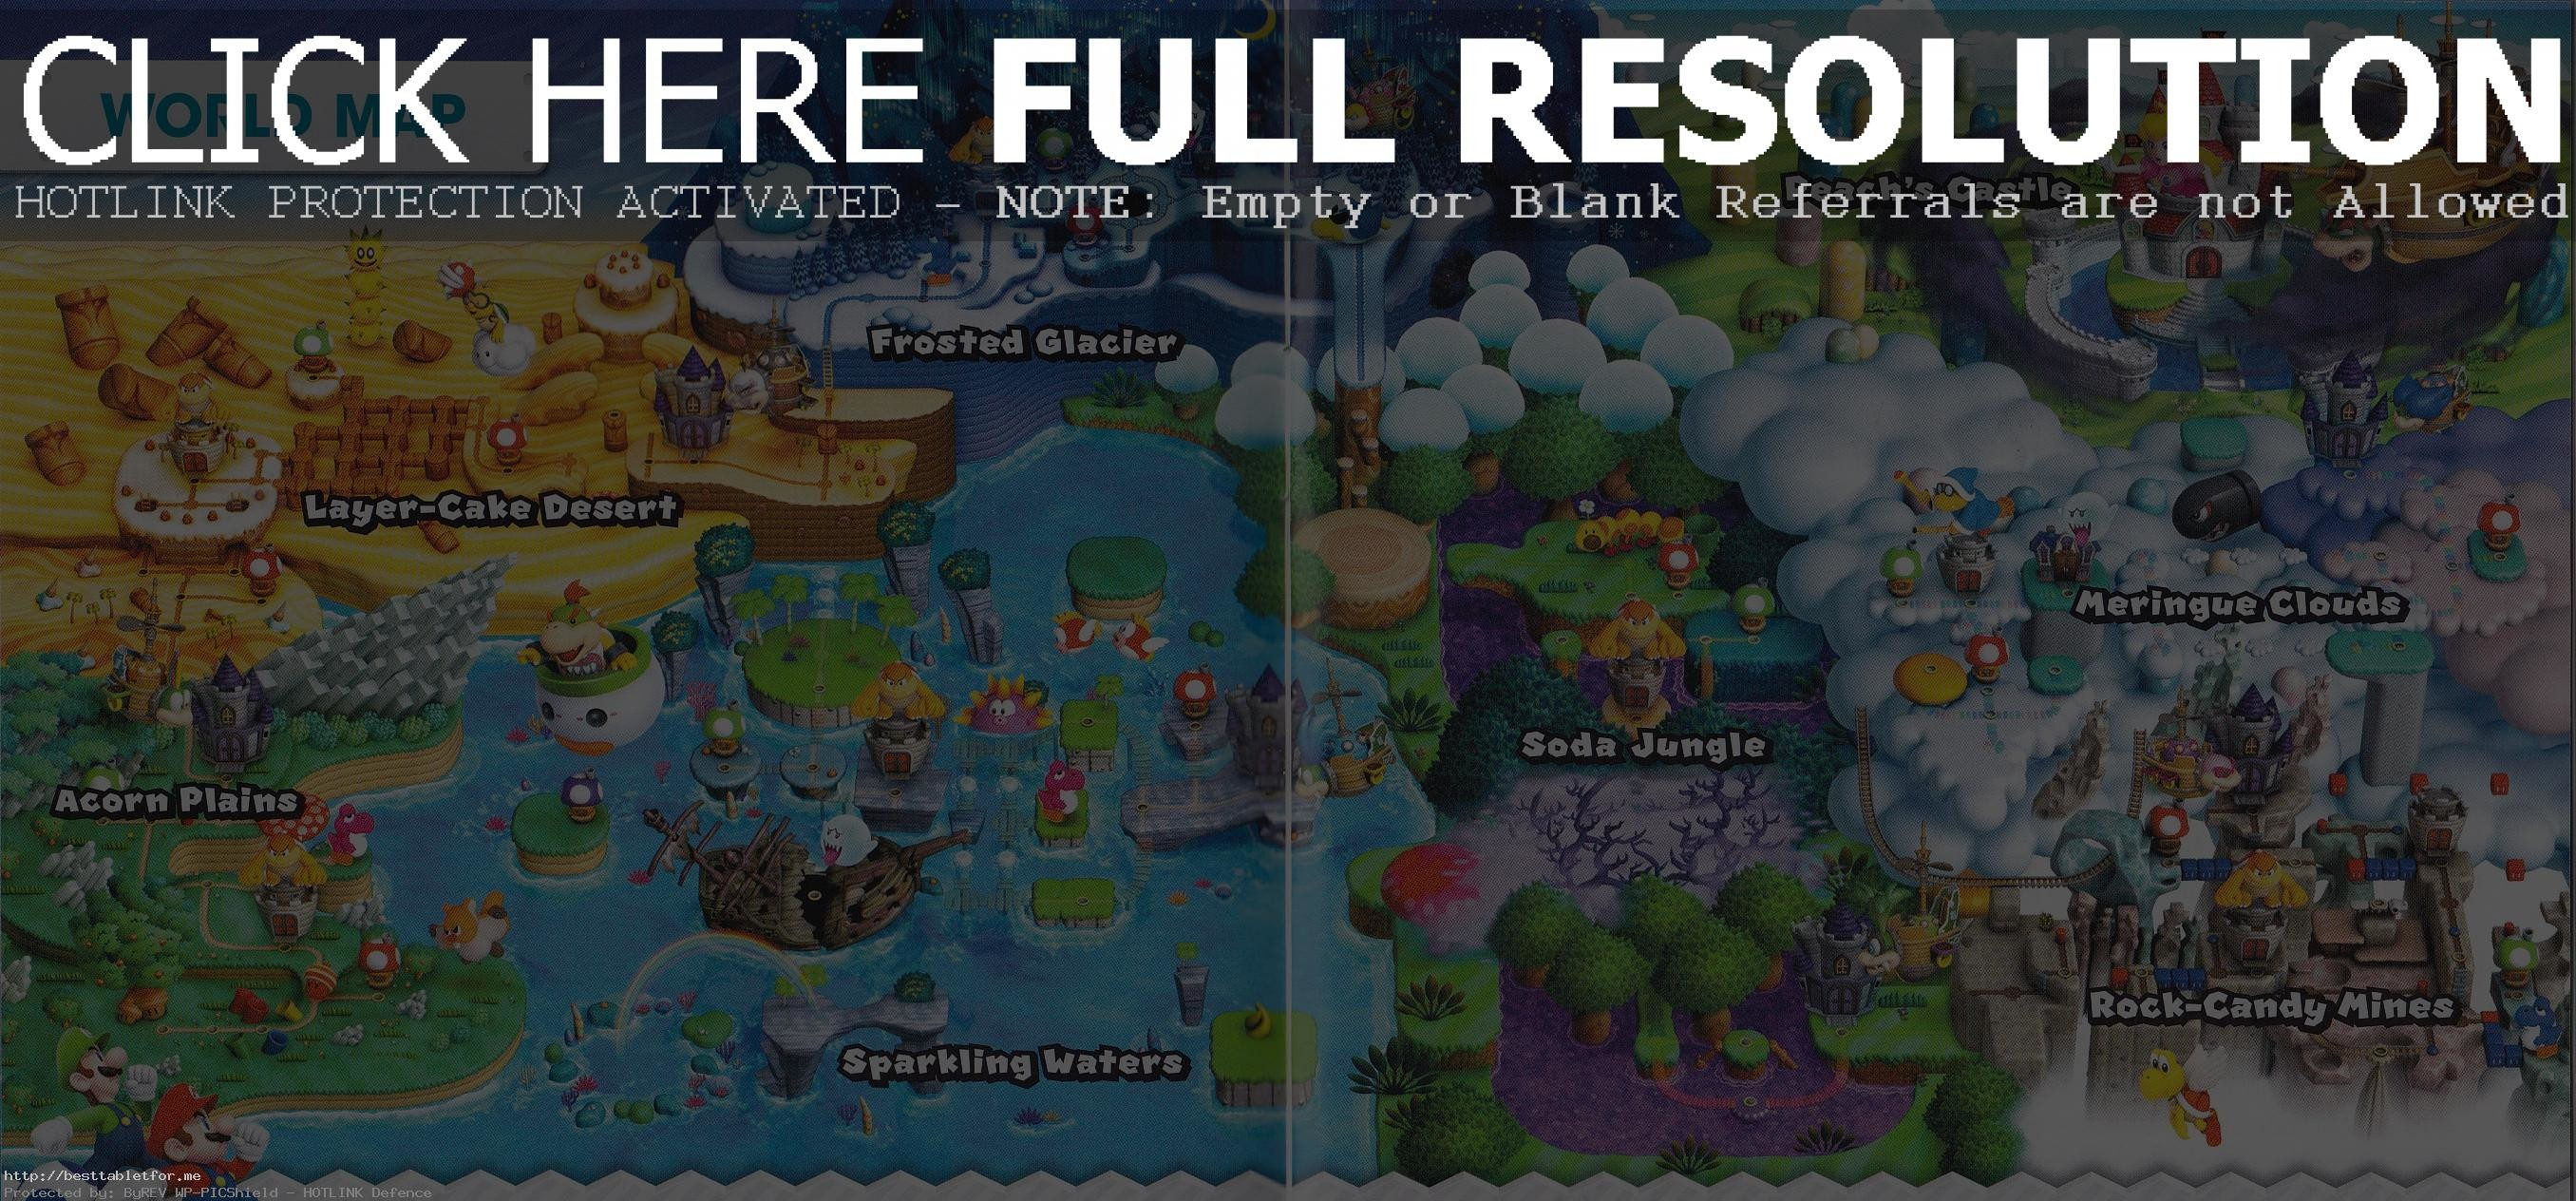 Super Mario World Map Wallpaper (56+ images)